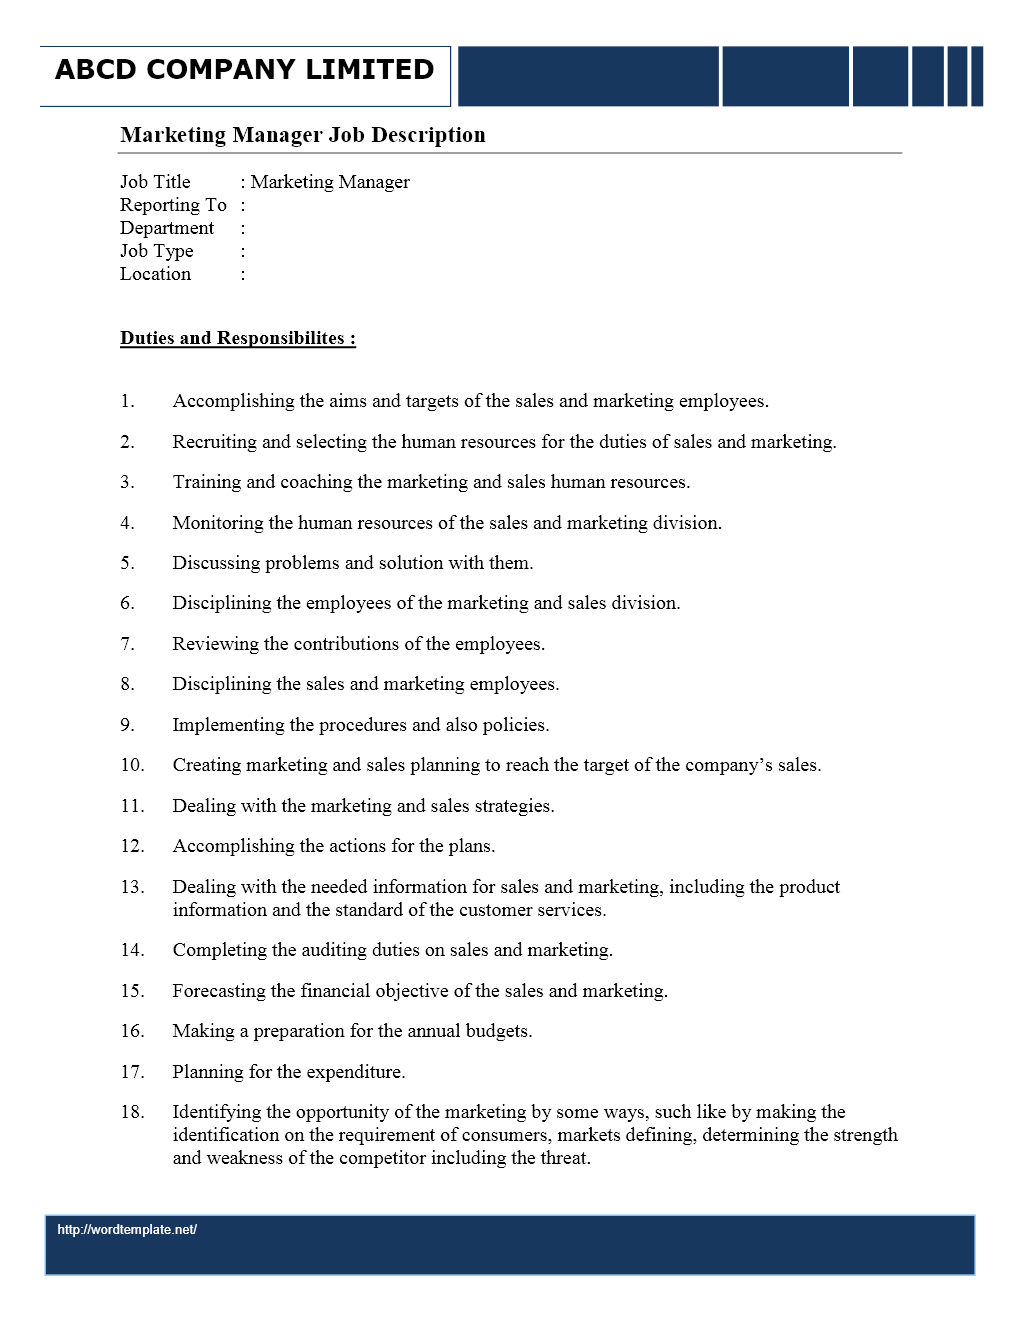 medical assistant job description wordtemplates net janitor job description middot marketing manager job description